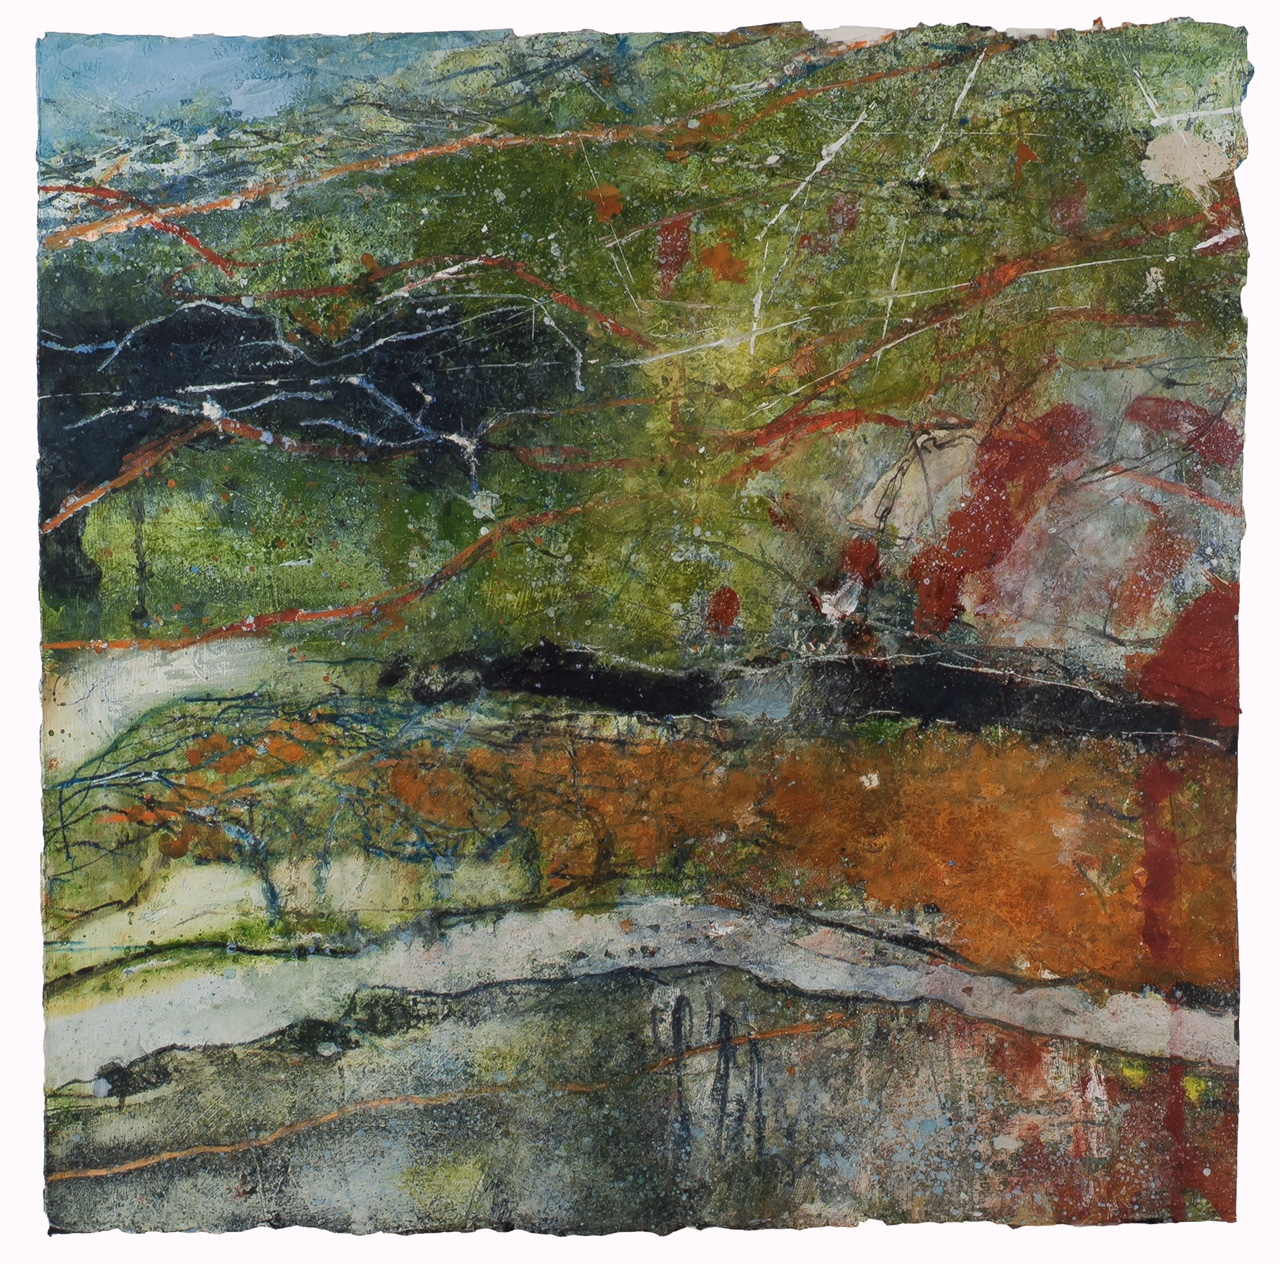 Hawthorn Hillside, Edale. Watercolour & Mixed media on paper 45x45cm